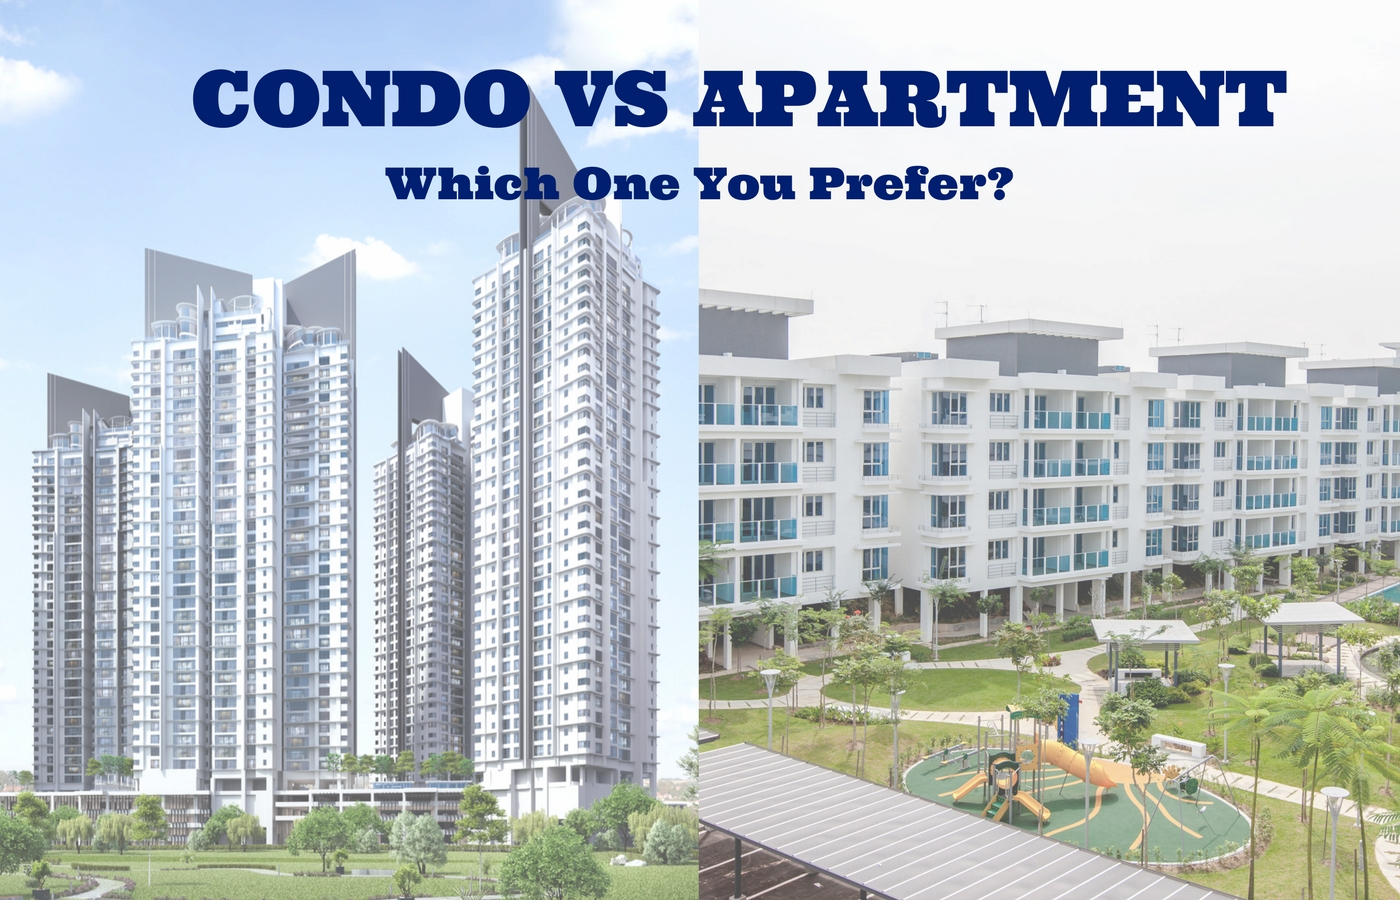 CONDO VS APARTMENT